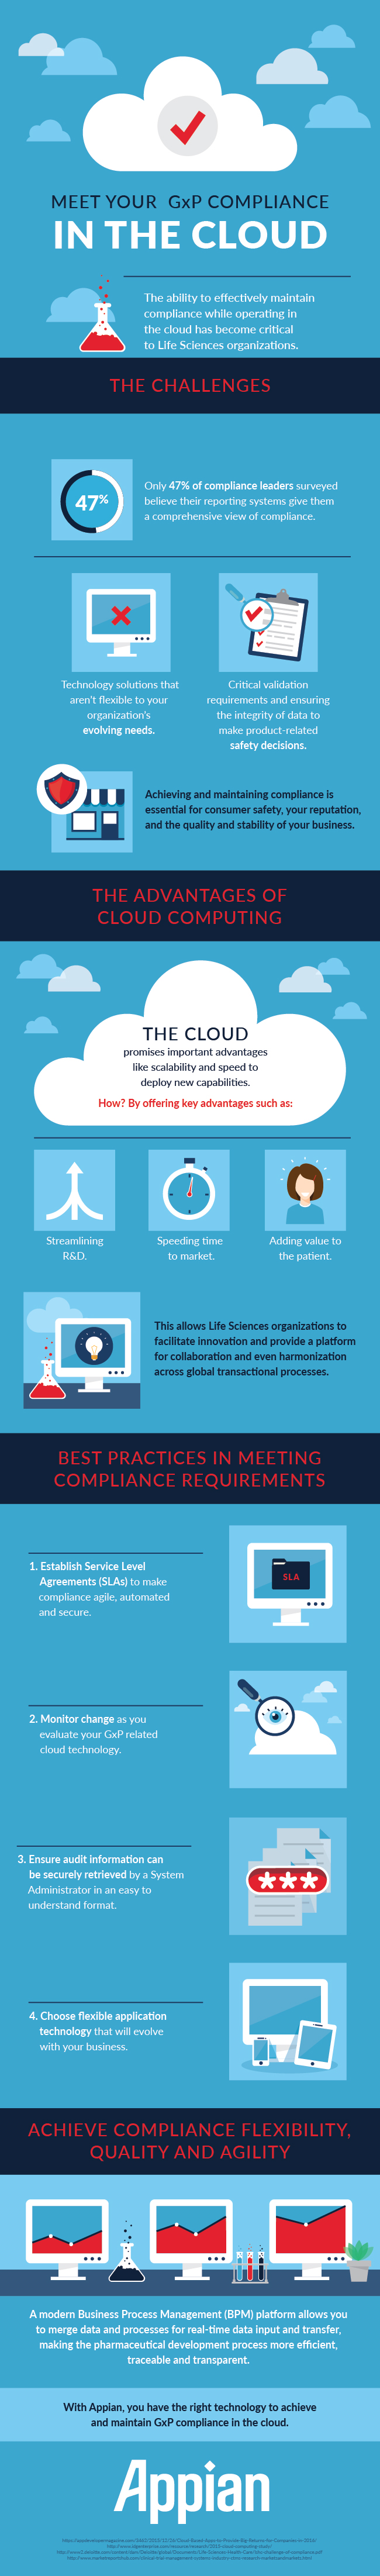 [Infographic] Meet Your GxP Compliance in the Cloud